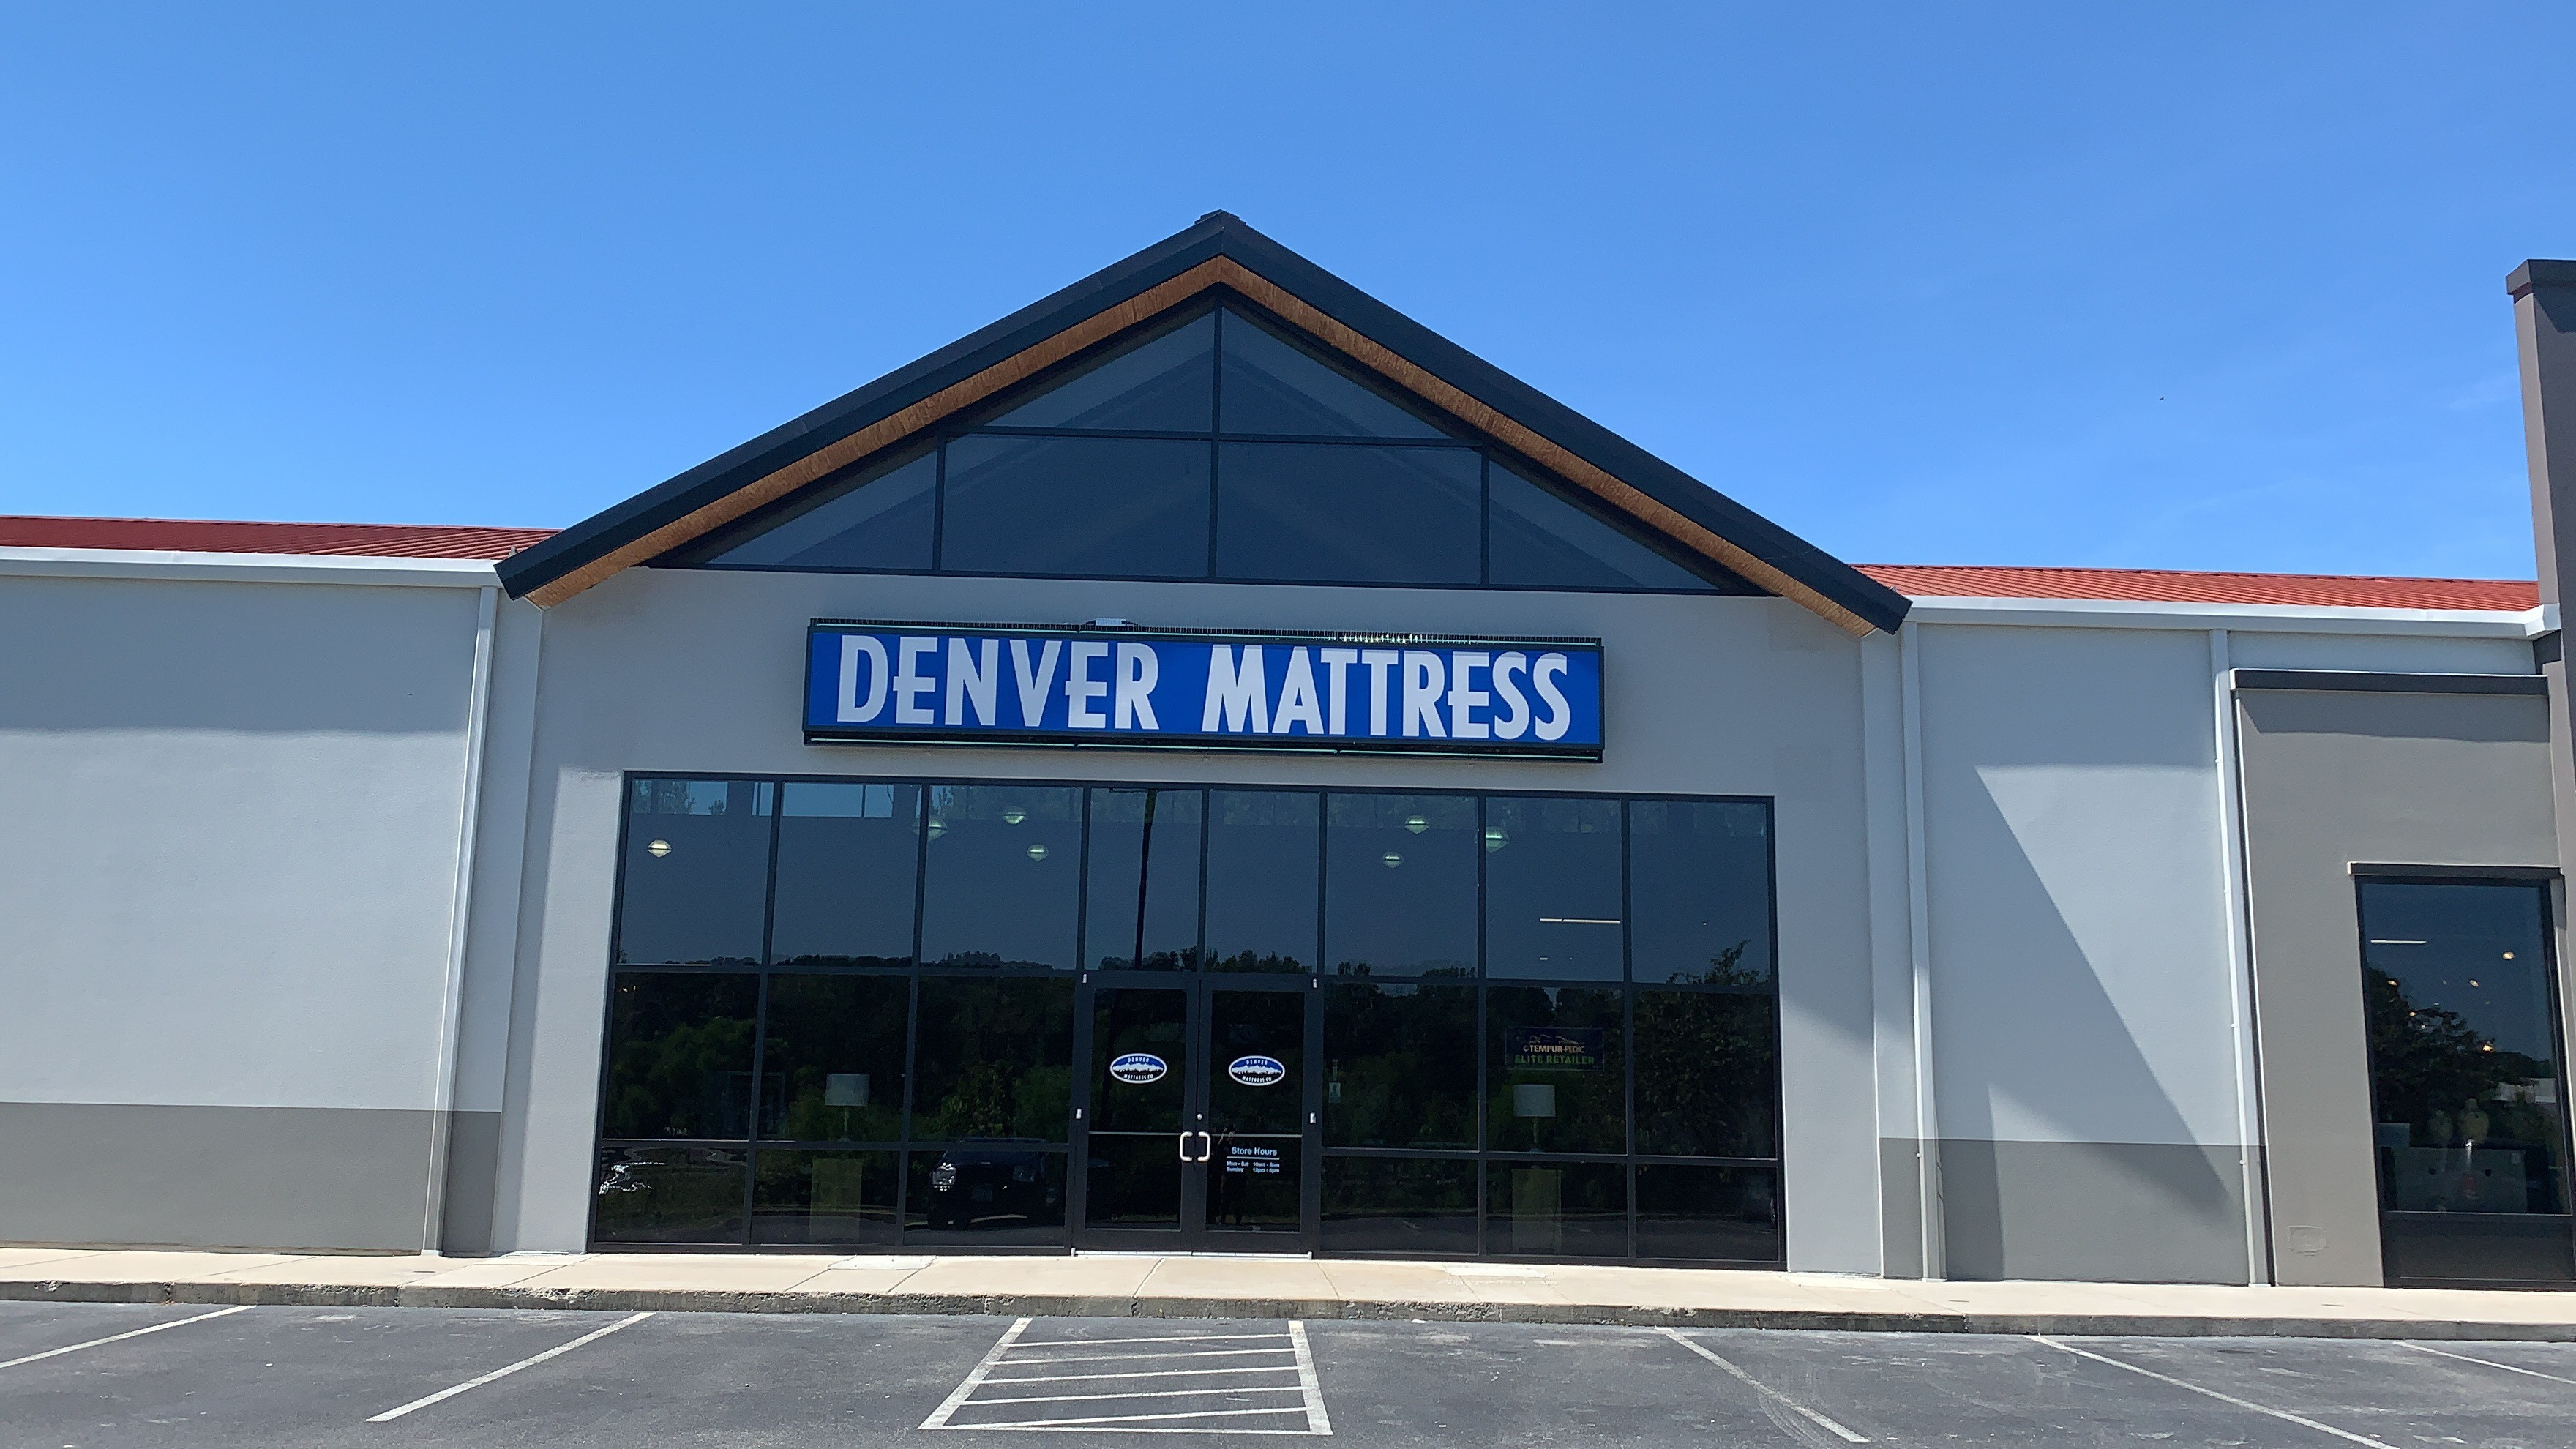 Facts About Denver Mattress Revealed